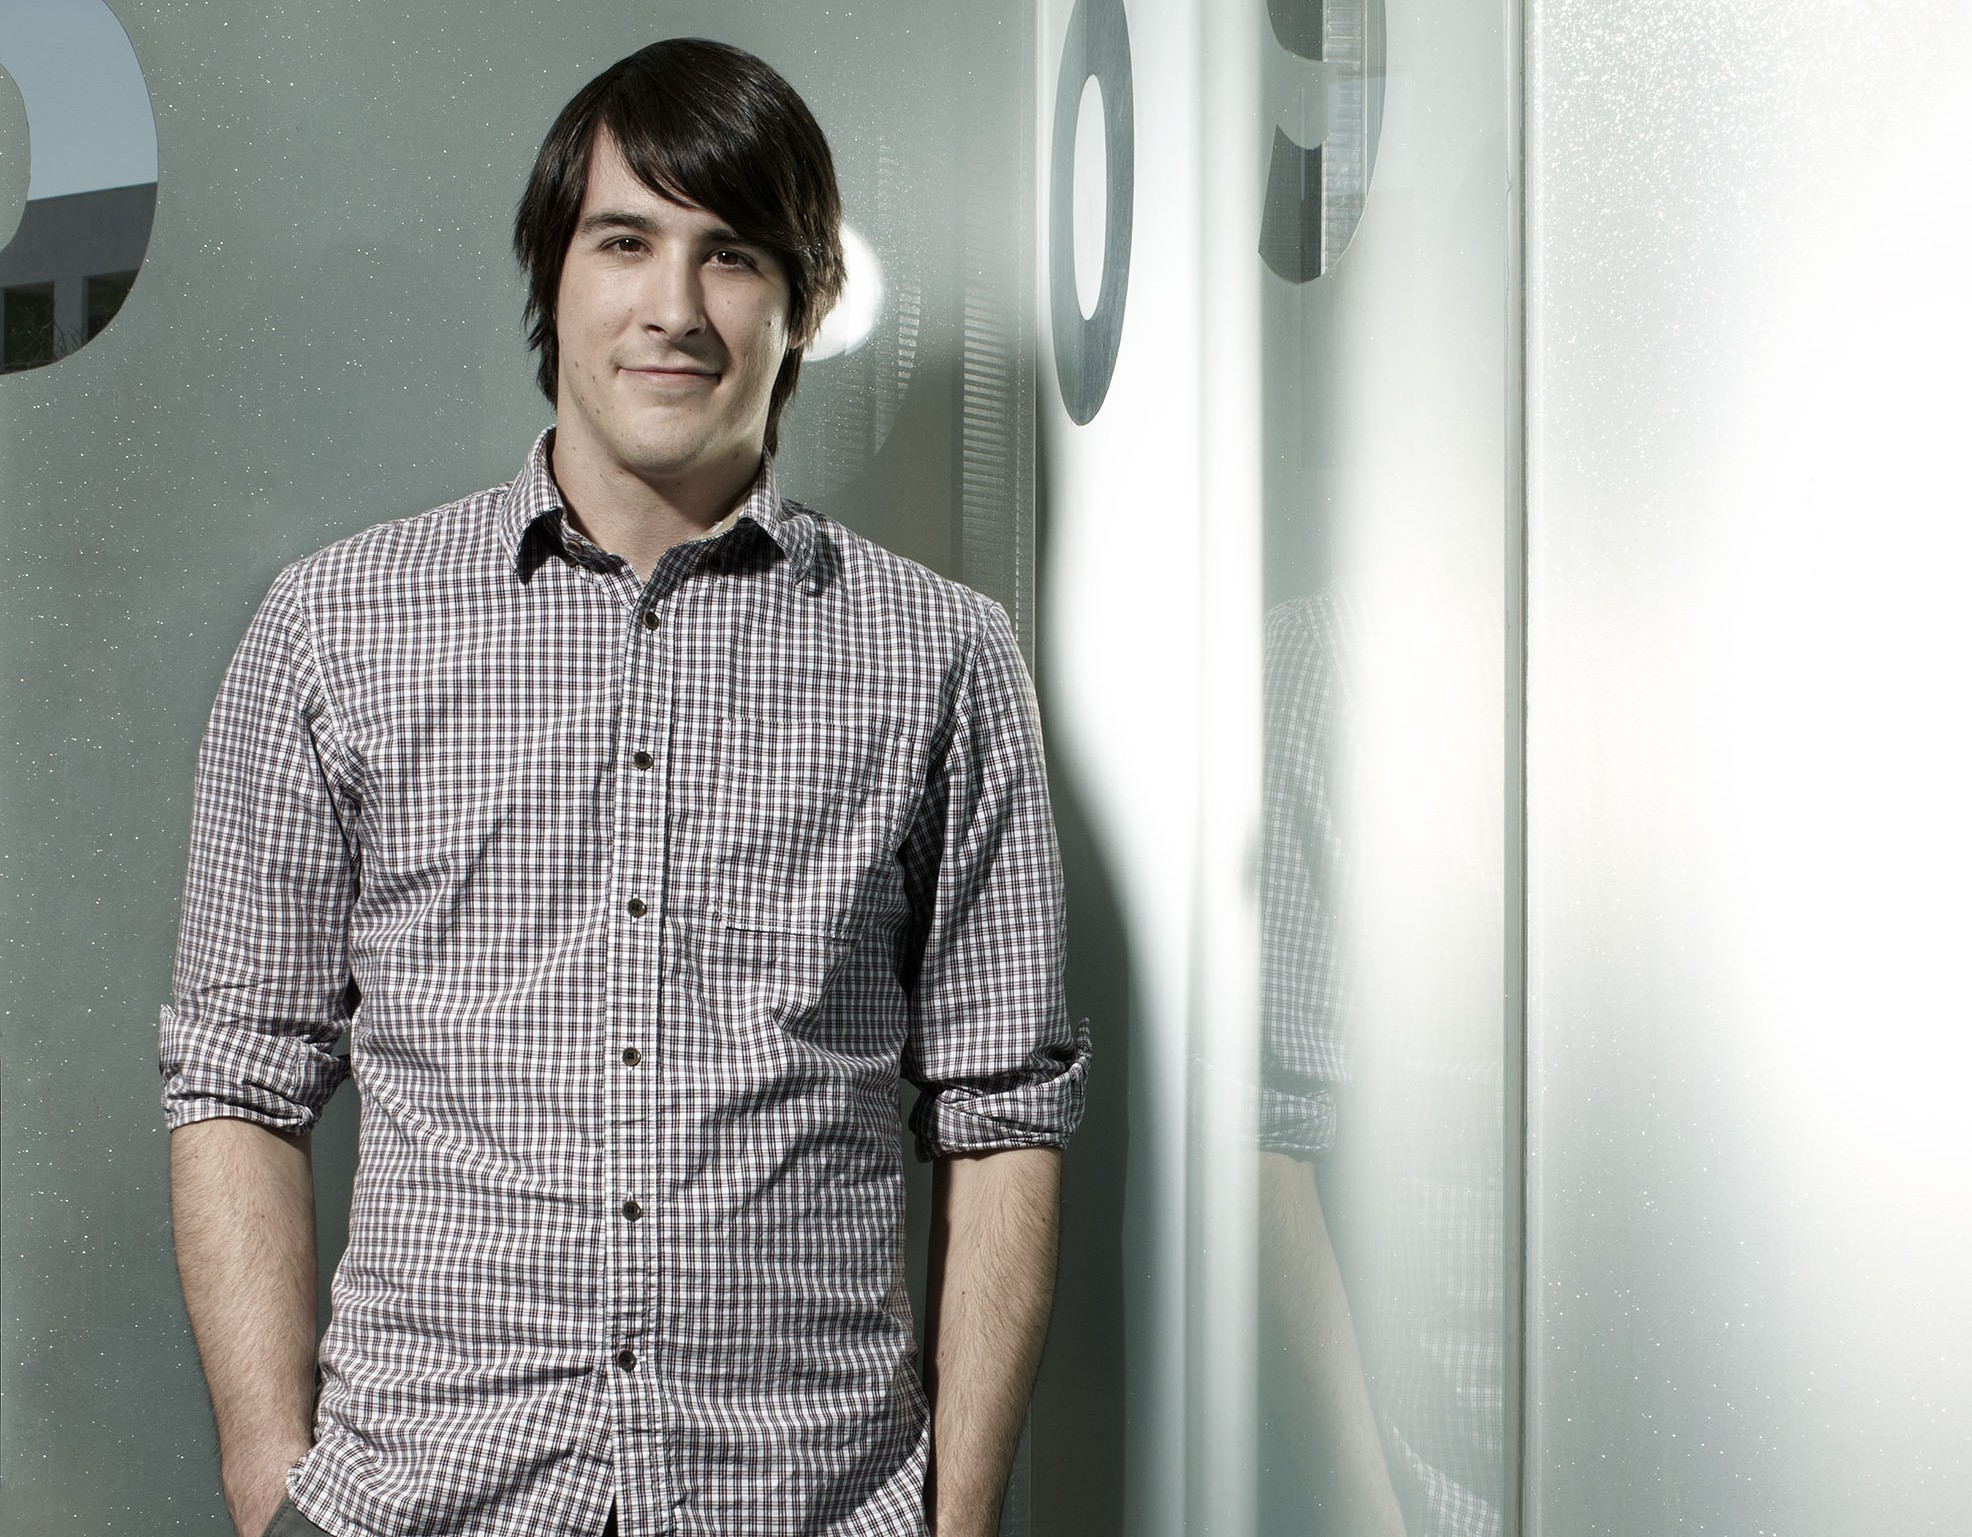 Quick & Dirty with JG Quintel